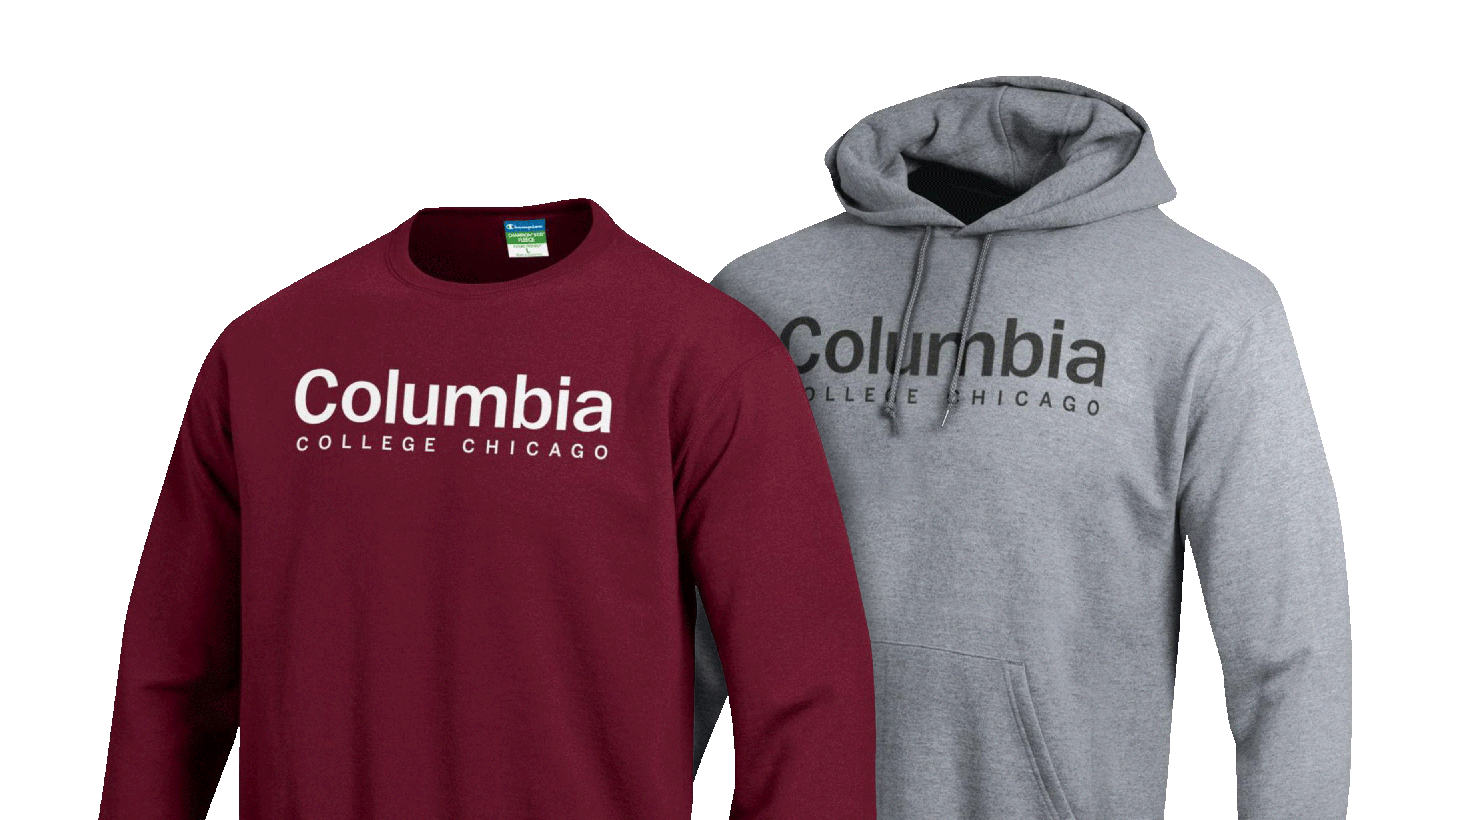 5d6a74540 Columbia College Chicago Apparel, Merchandise, & Gifts